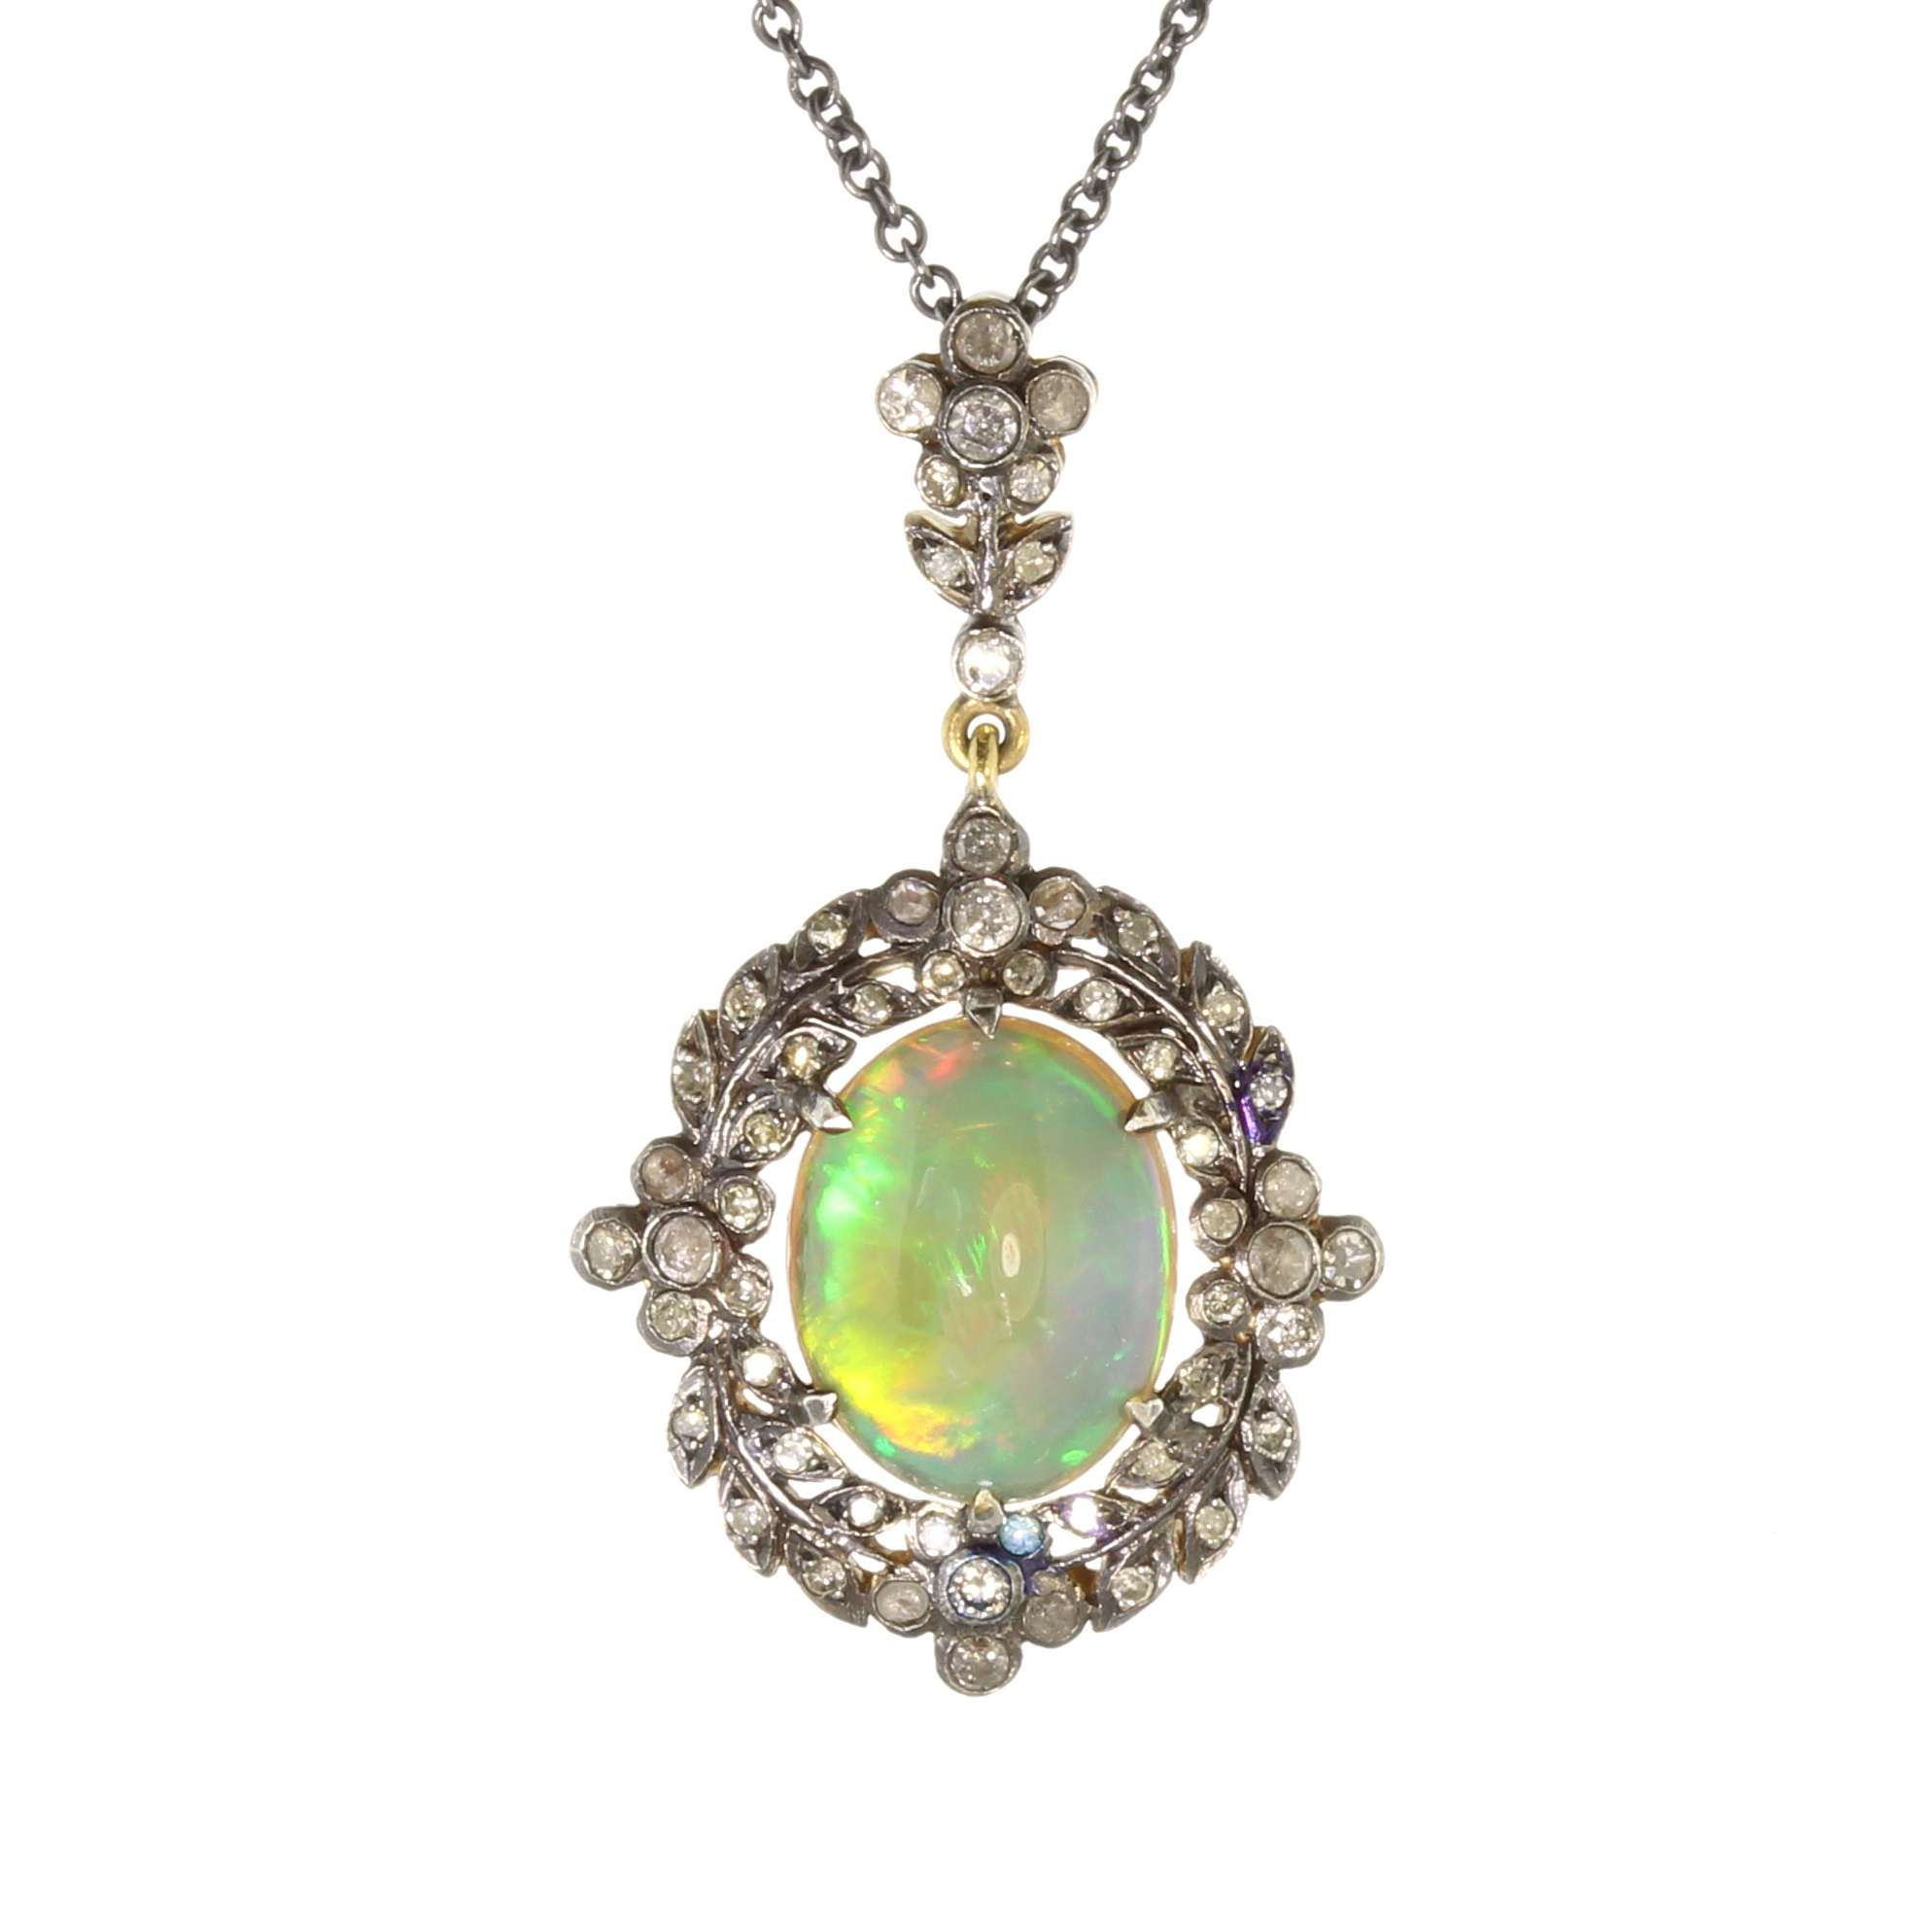 Los 14 - An antique opal and diamond pendant and chain in gold set with a central oval cabochon opal of